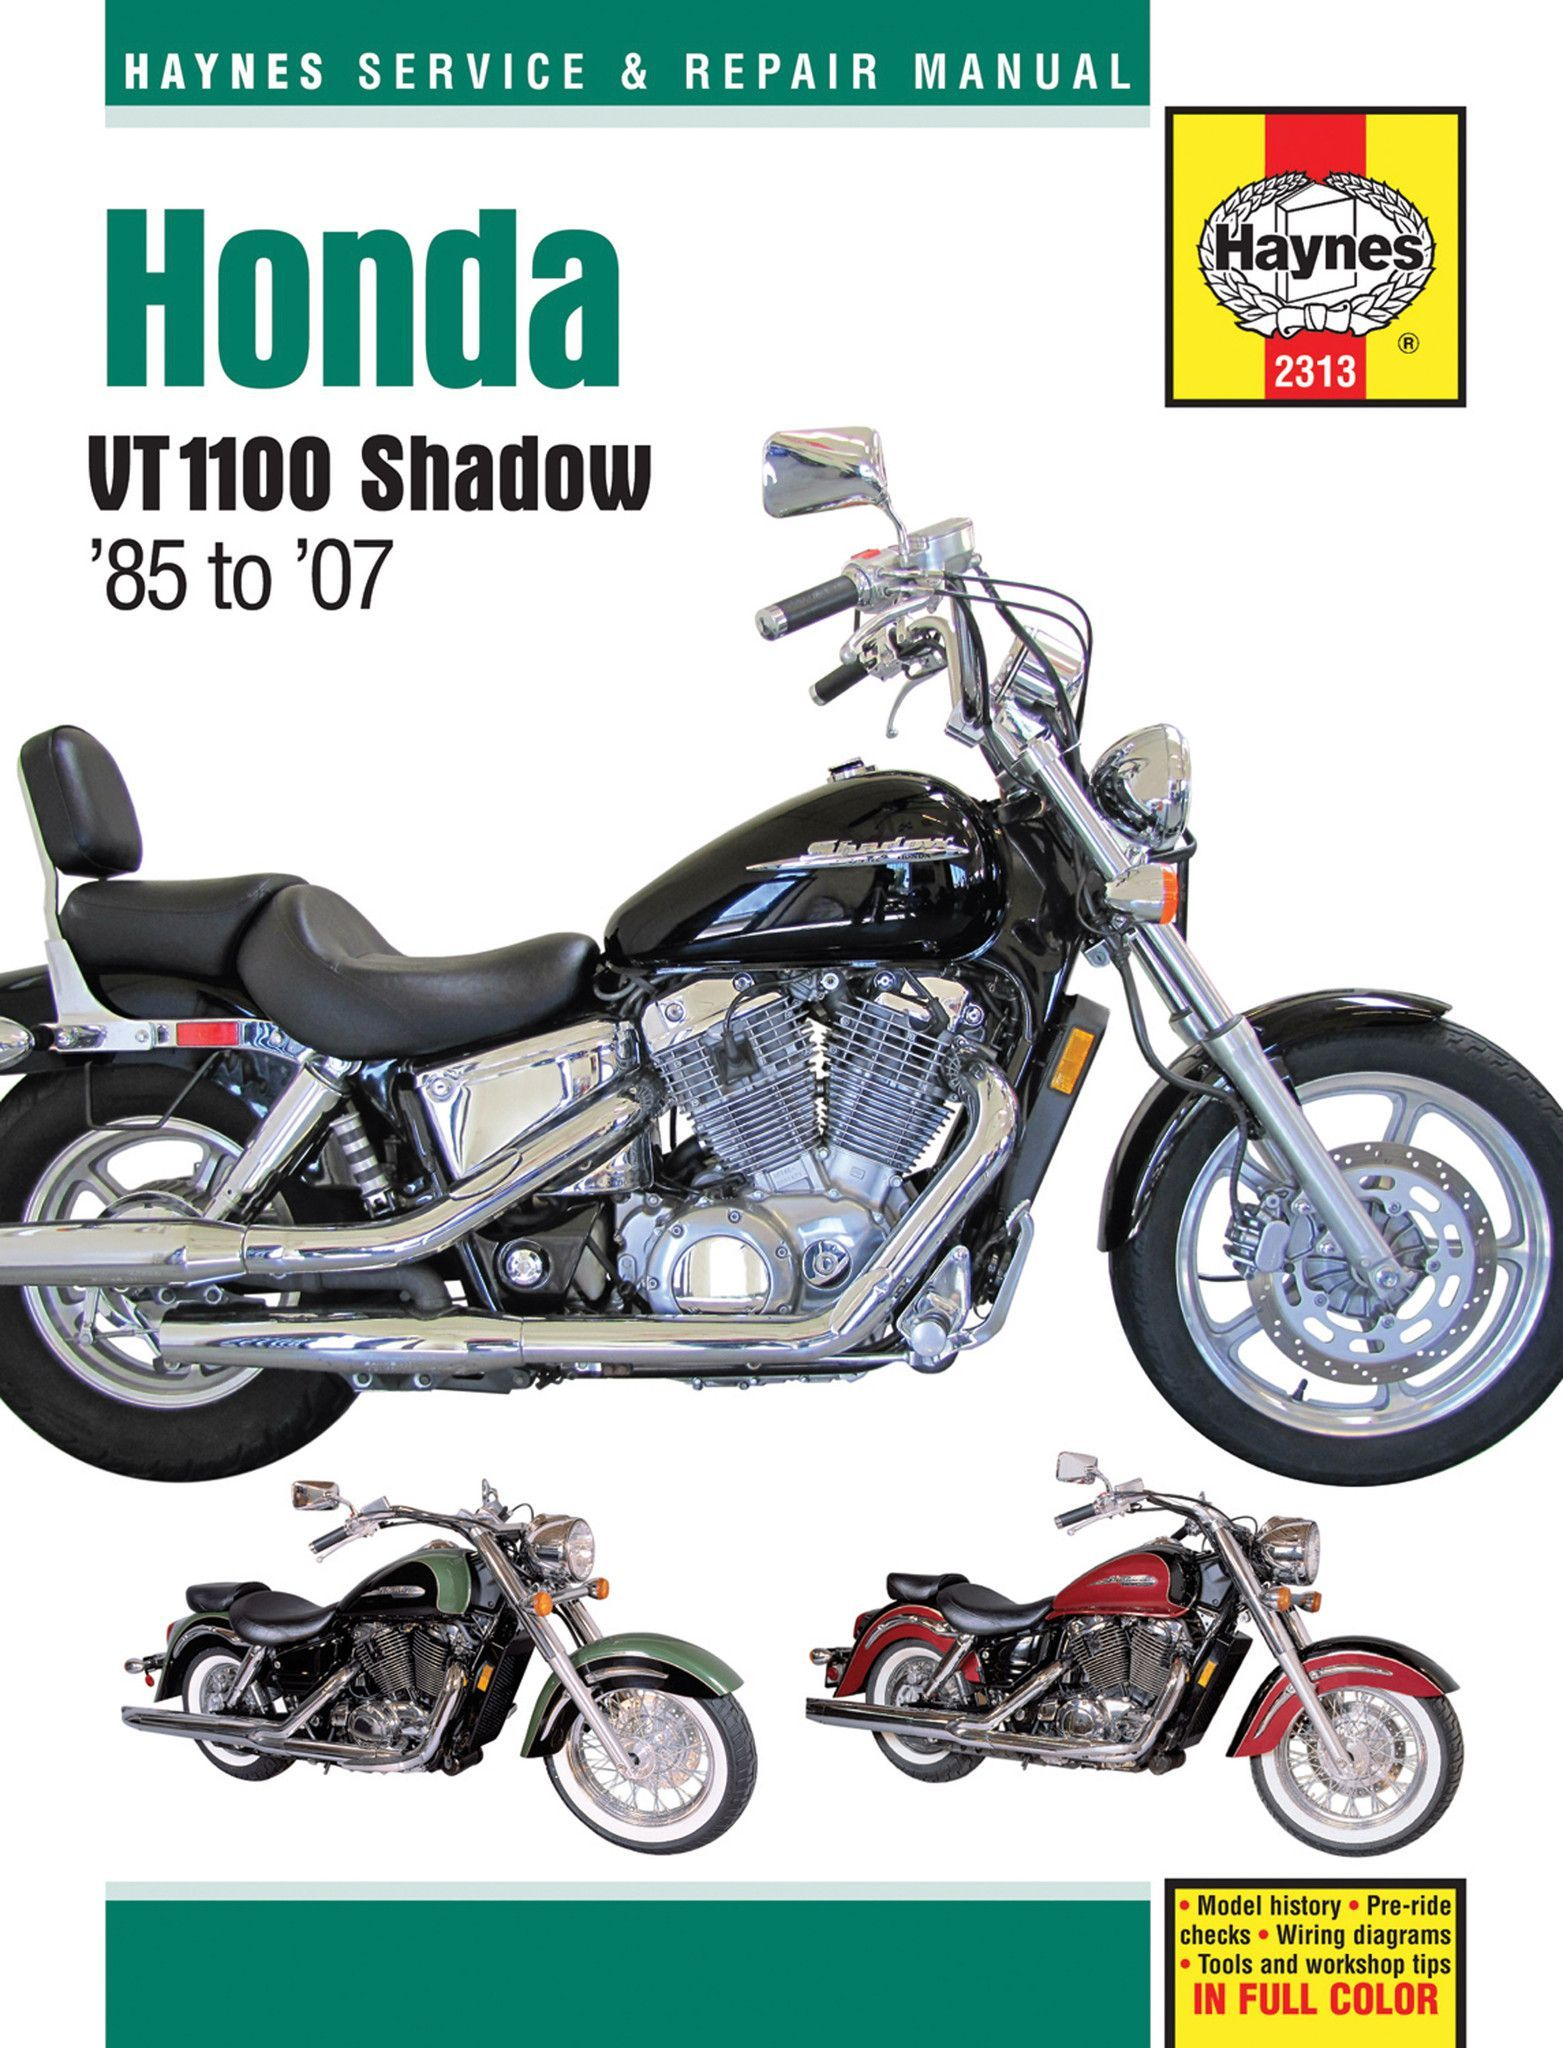 b548c75714cab9818af677b5f1a70187 haynes m2313 service & repair manual for 1985 07 honda shadow 1985 vt700c wiring diagram at eliteediting.co